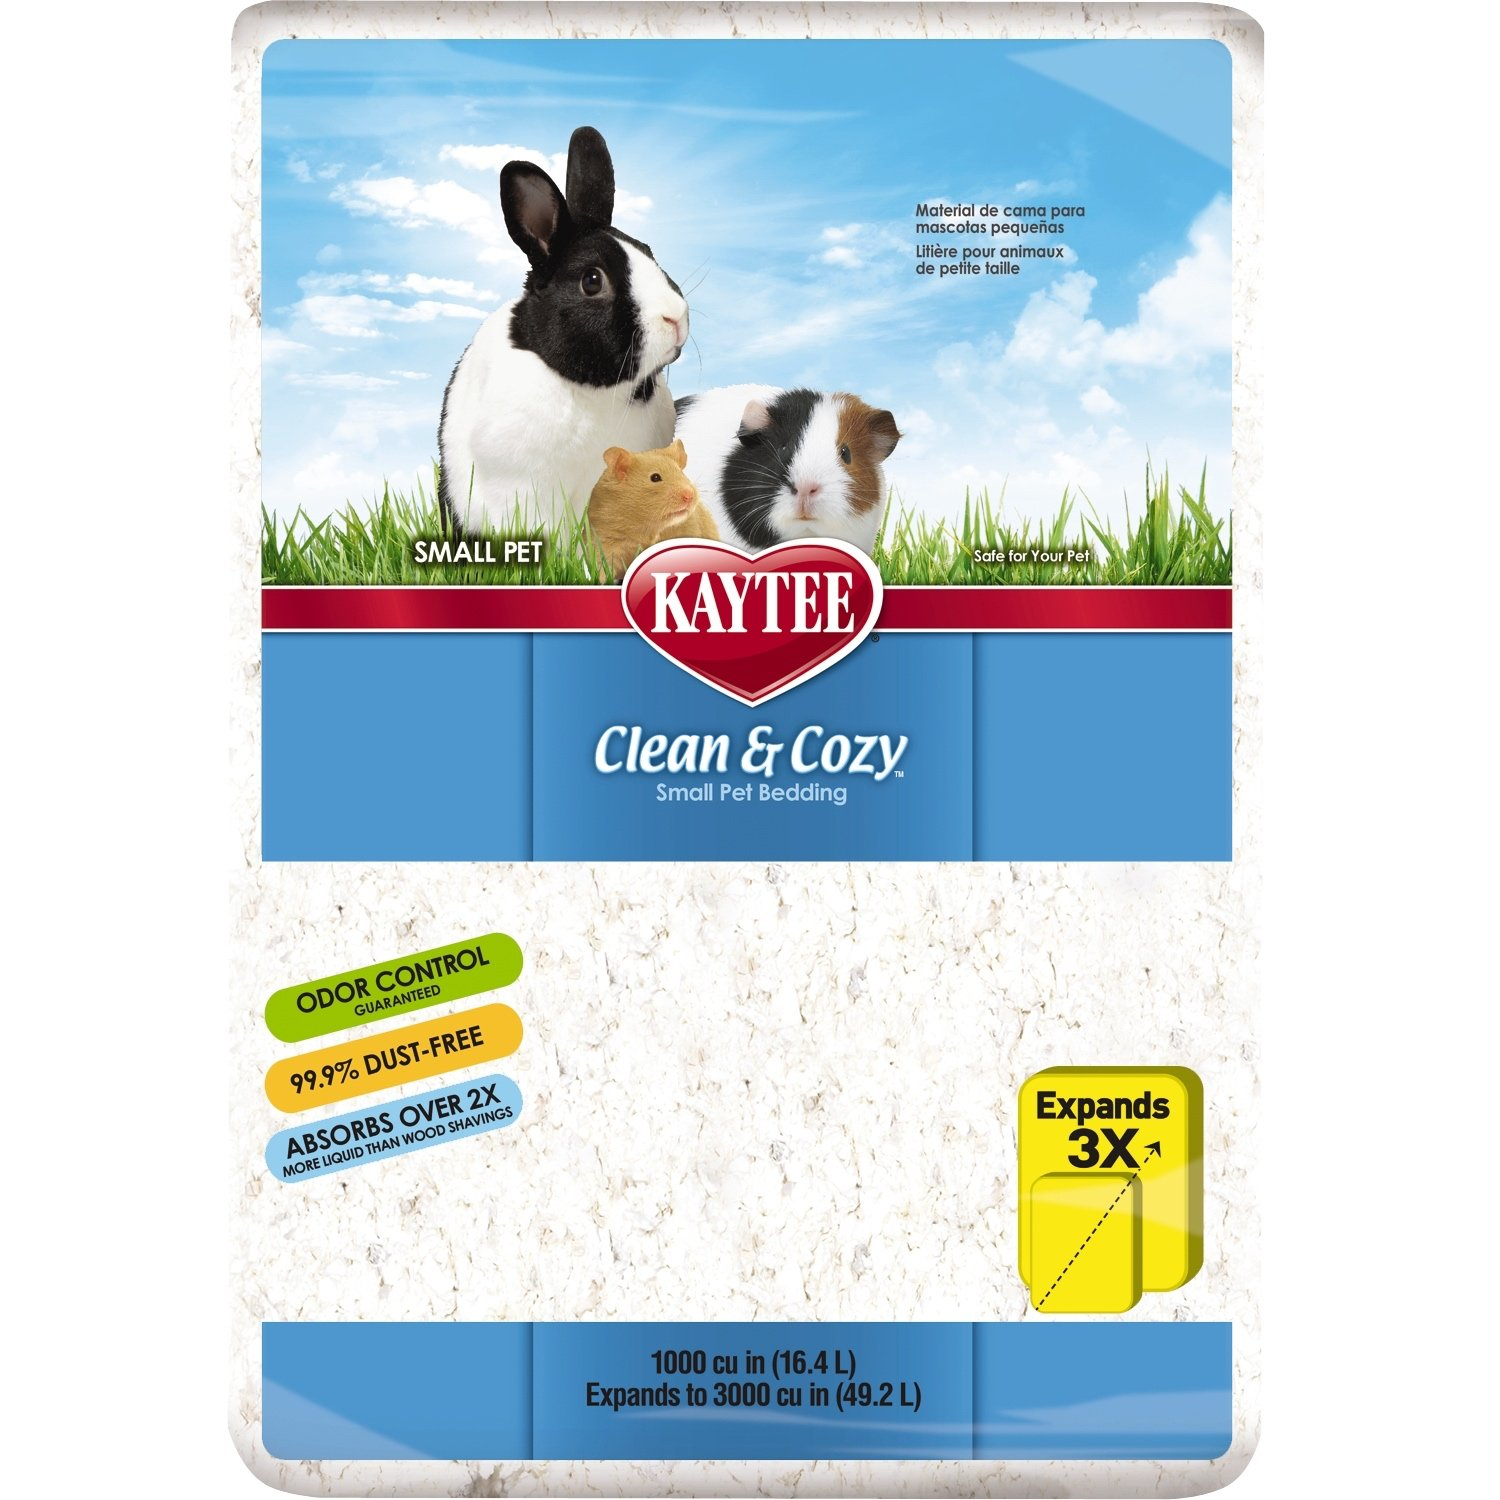 Kaytee Clean and Cozy Small Pet Bedding, White, 1000 cu.in.